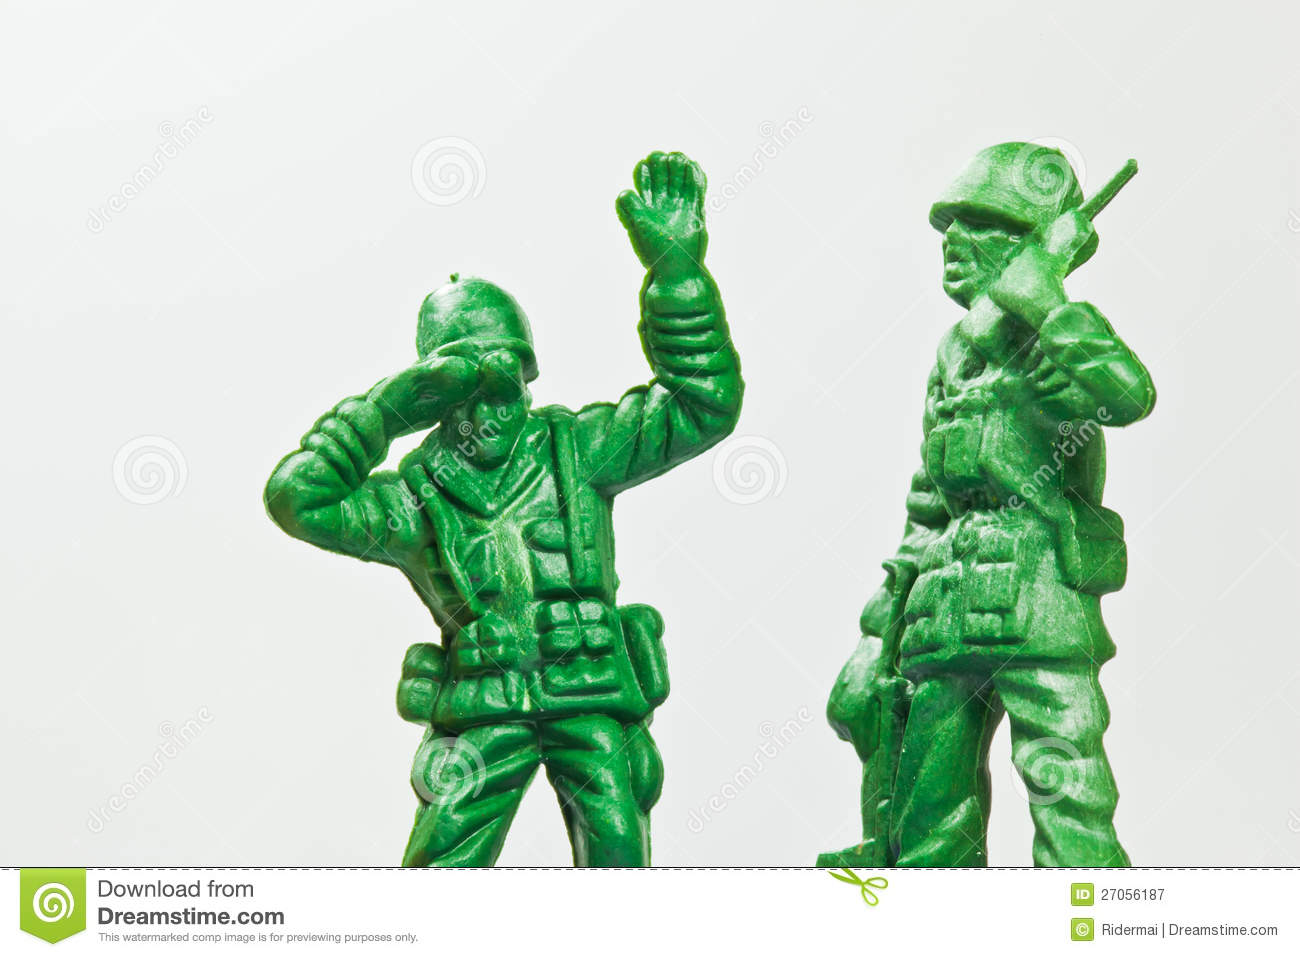 The Green Toy Soldier Royalty Free Stock Photography   Image  27056187